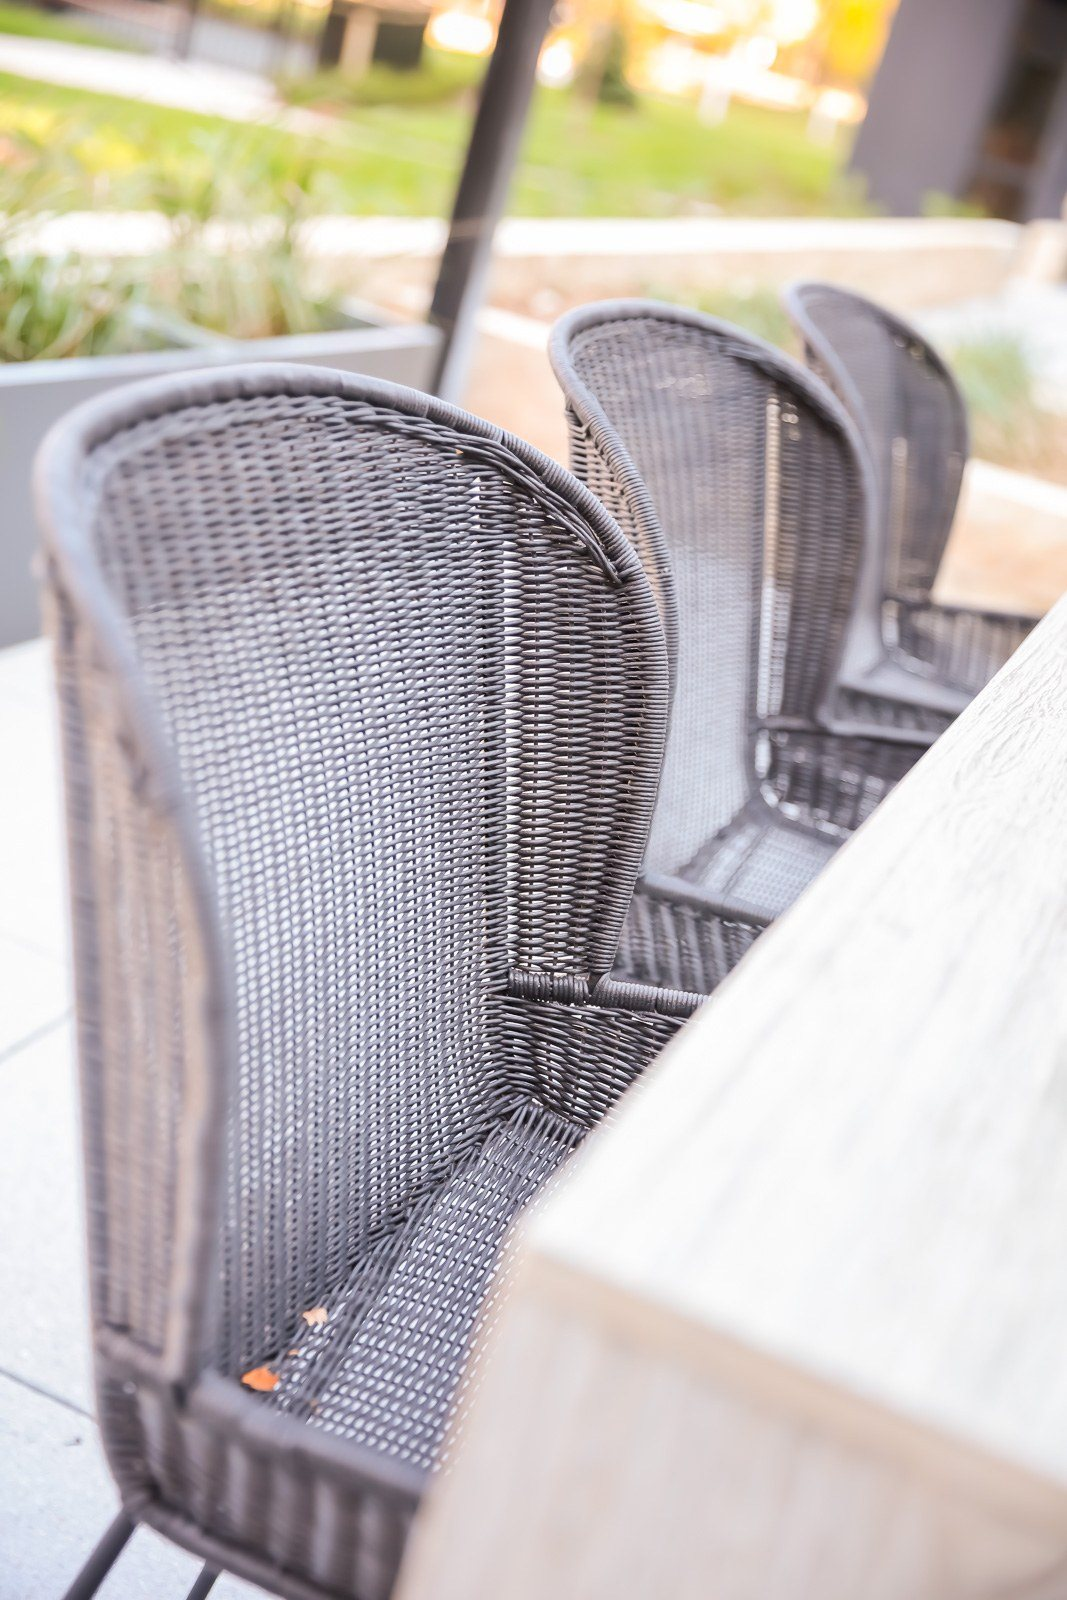 Harvest table outdoor seating and entertainment terrace